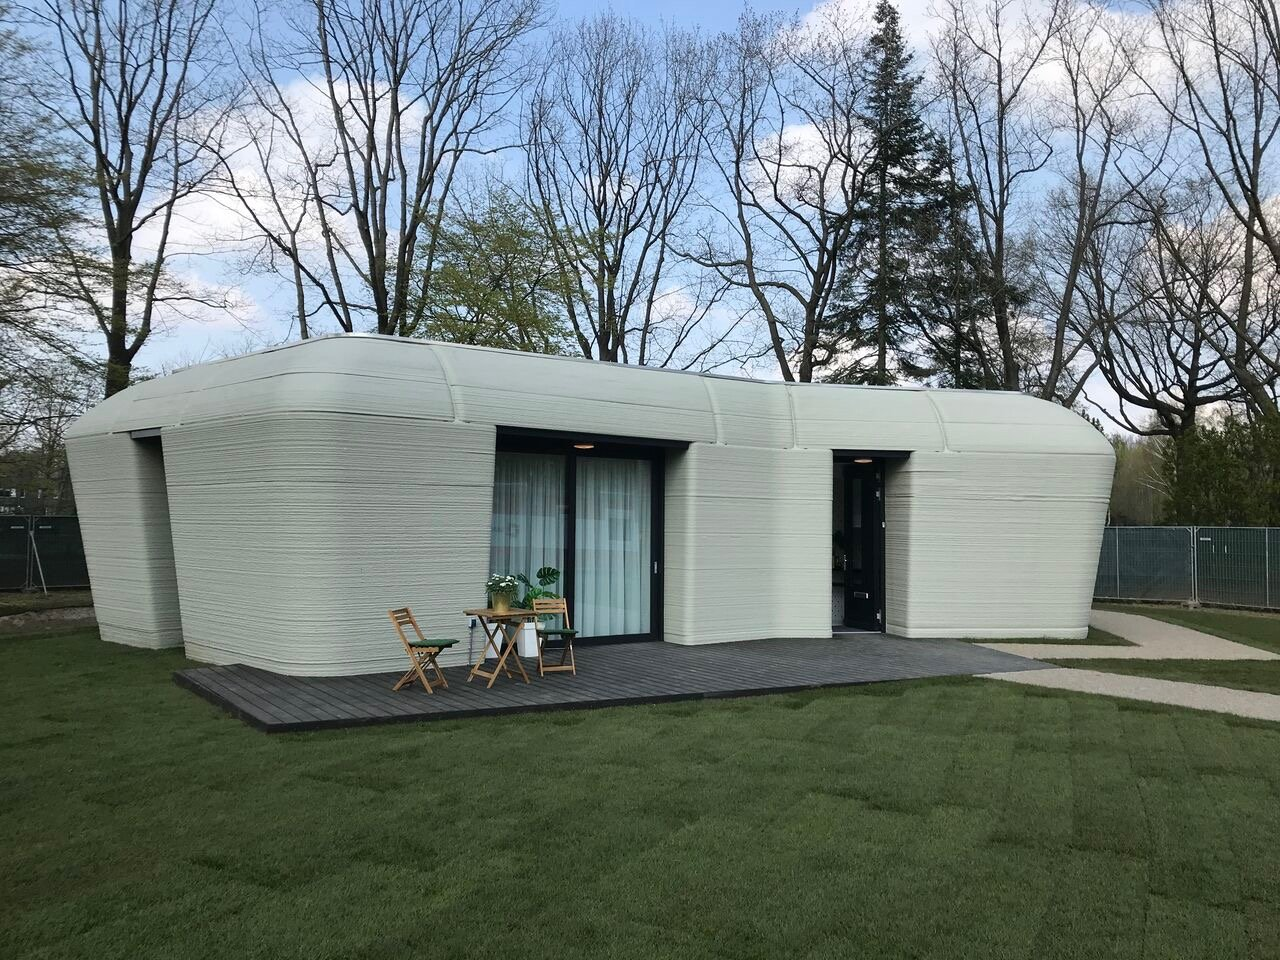 Project Milestone house is the fourth 3D printed home to get tenants